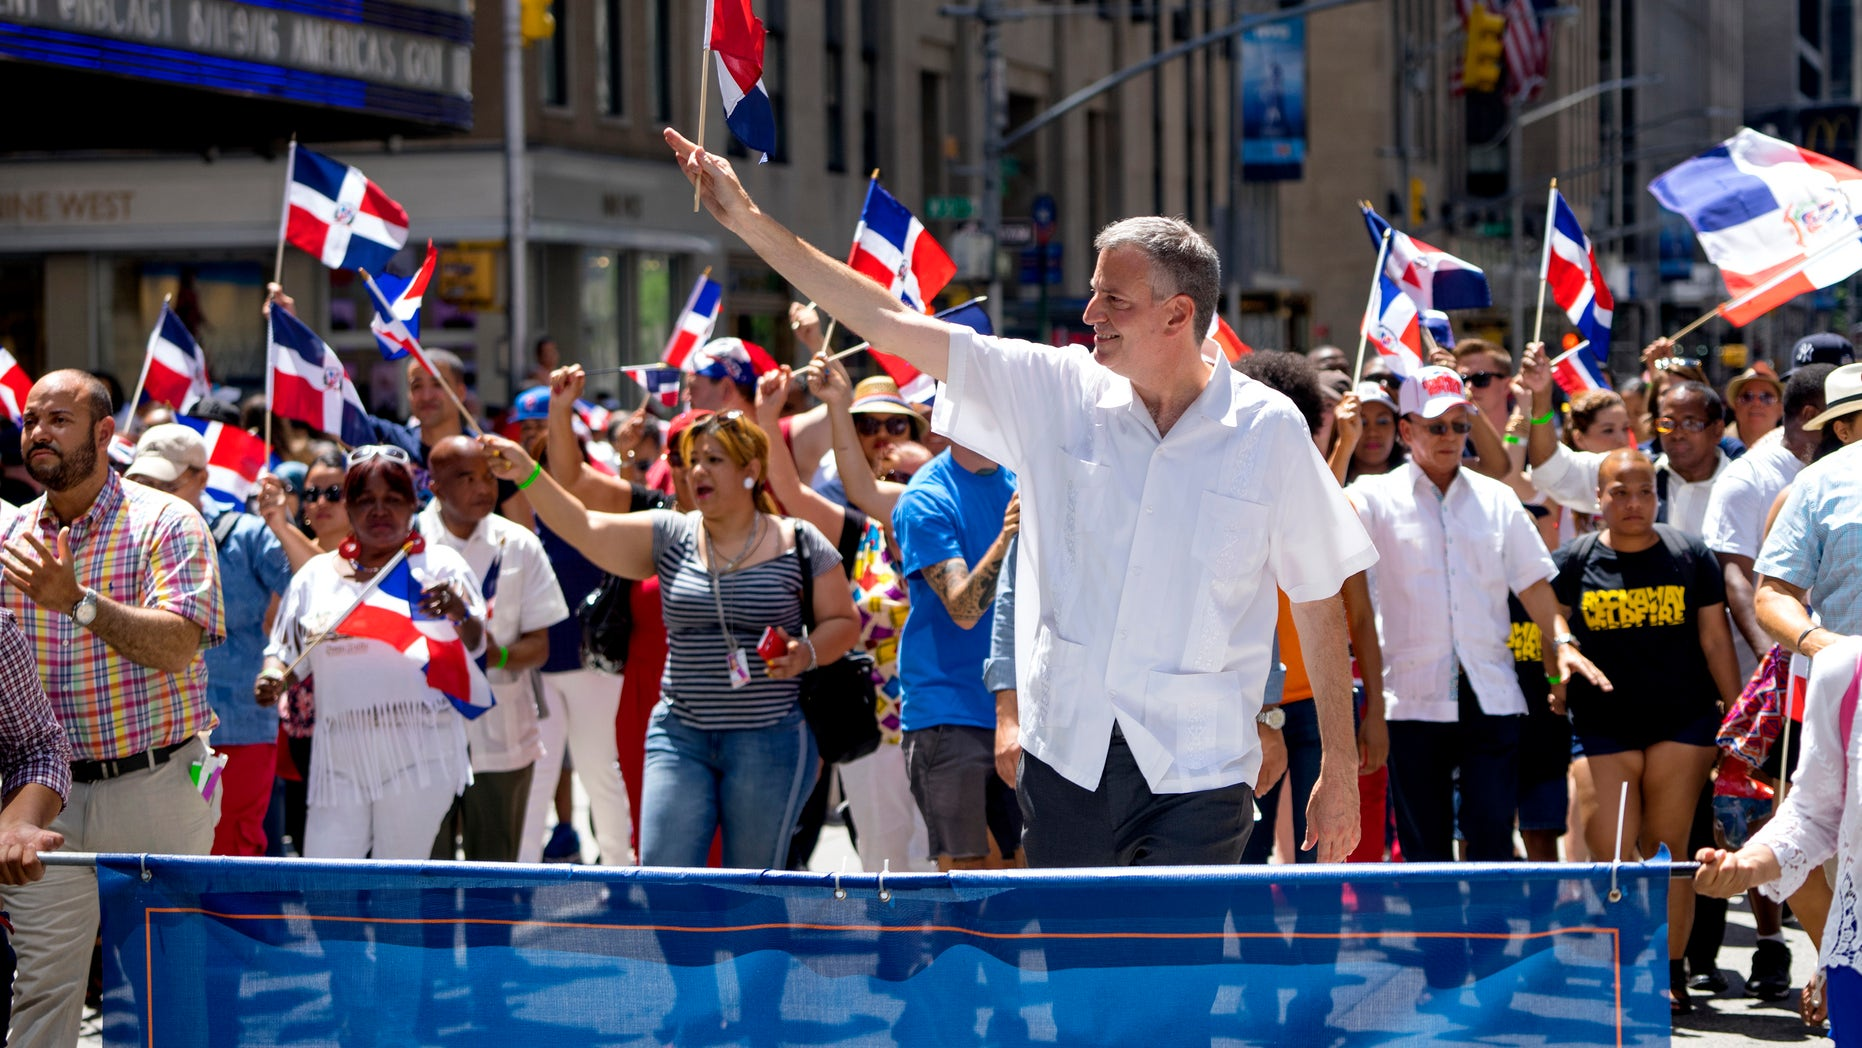 New York City Mayor Bill de Blasio walks in the Dominican Day Parade Sunday, Aug. 9, 2015, in New York.